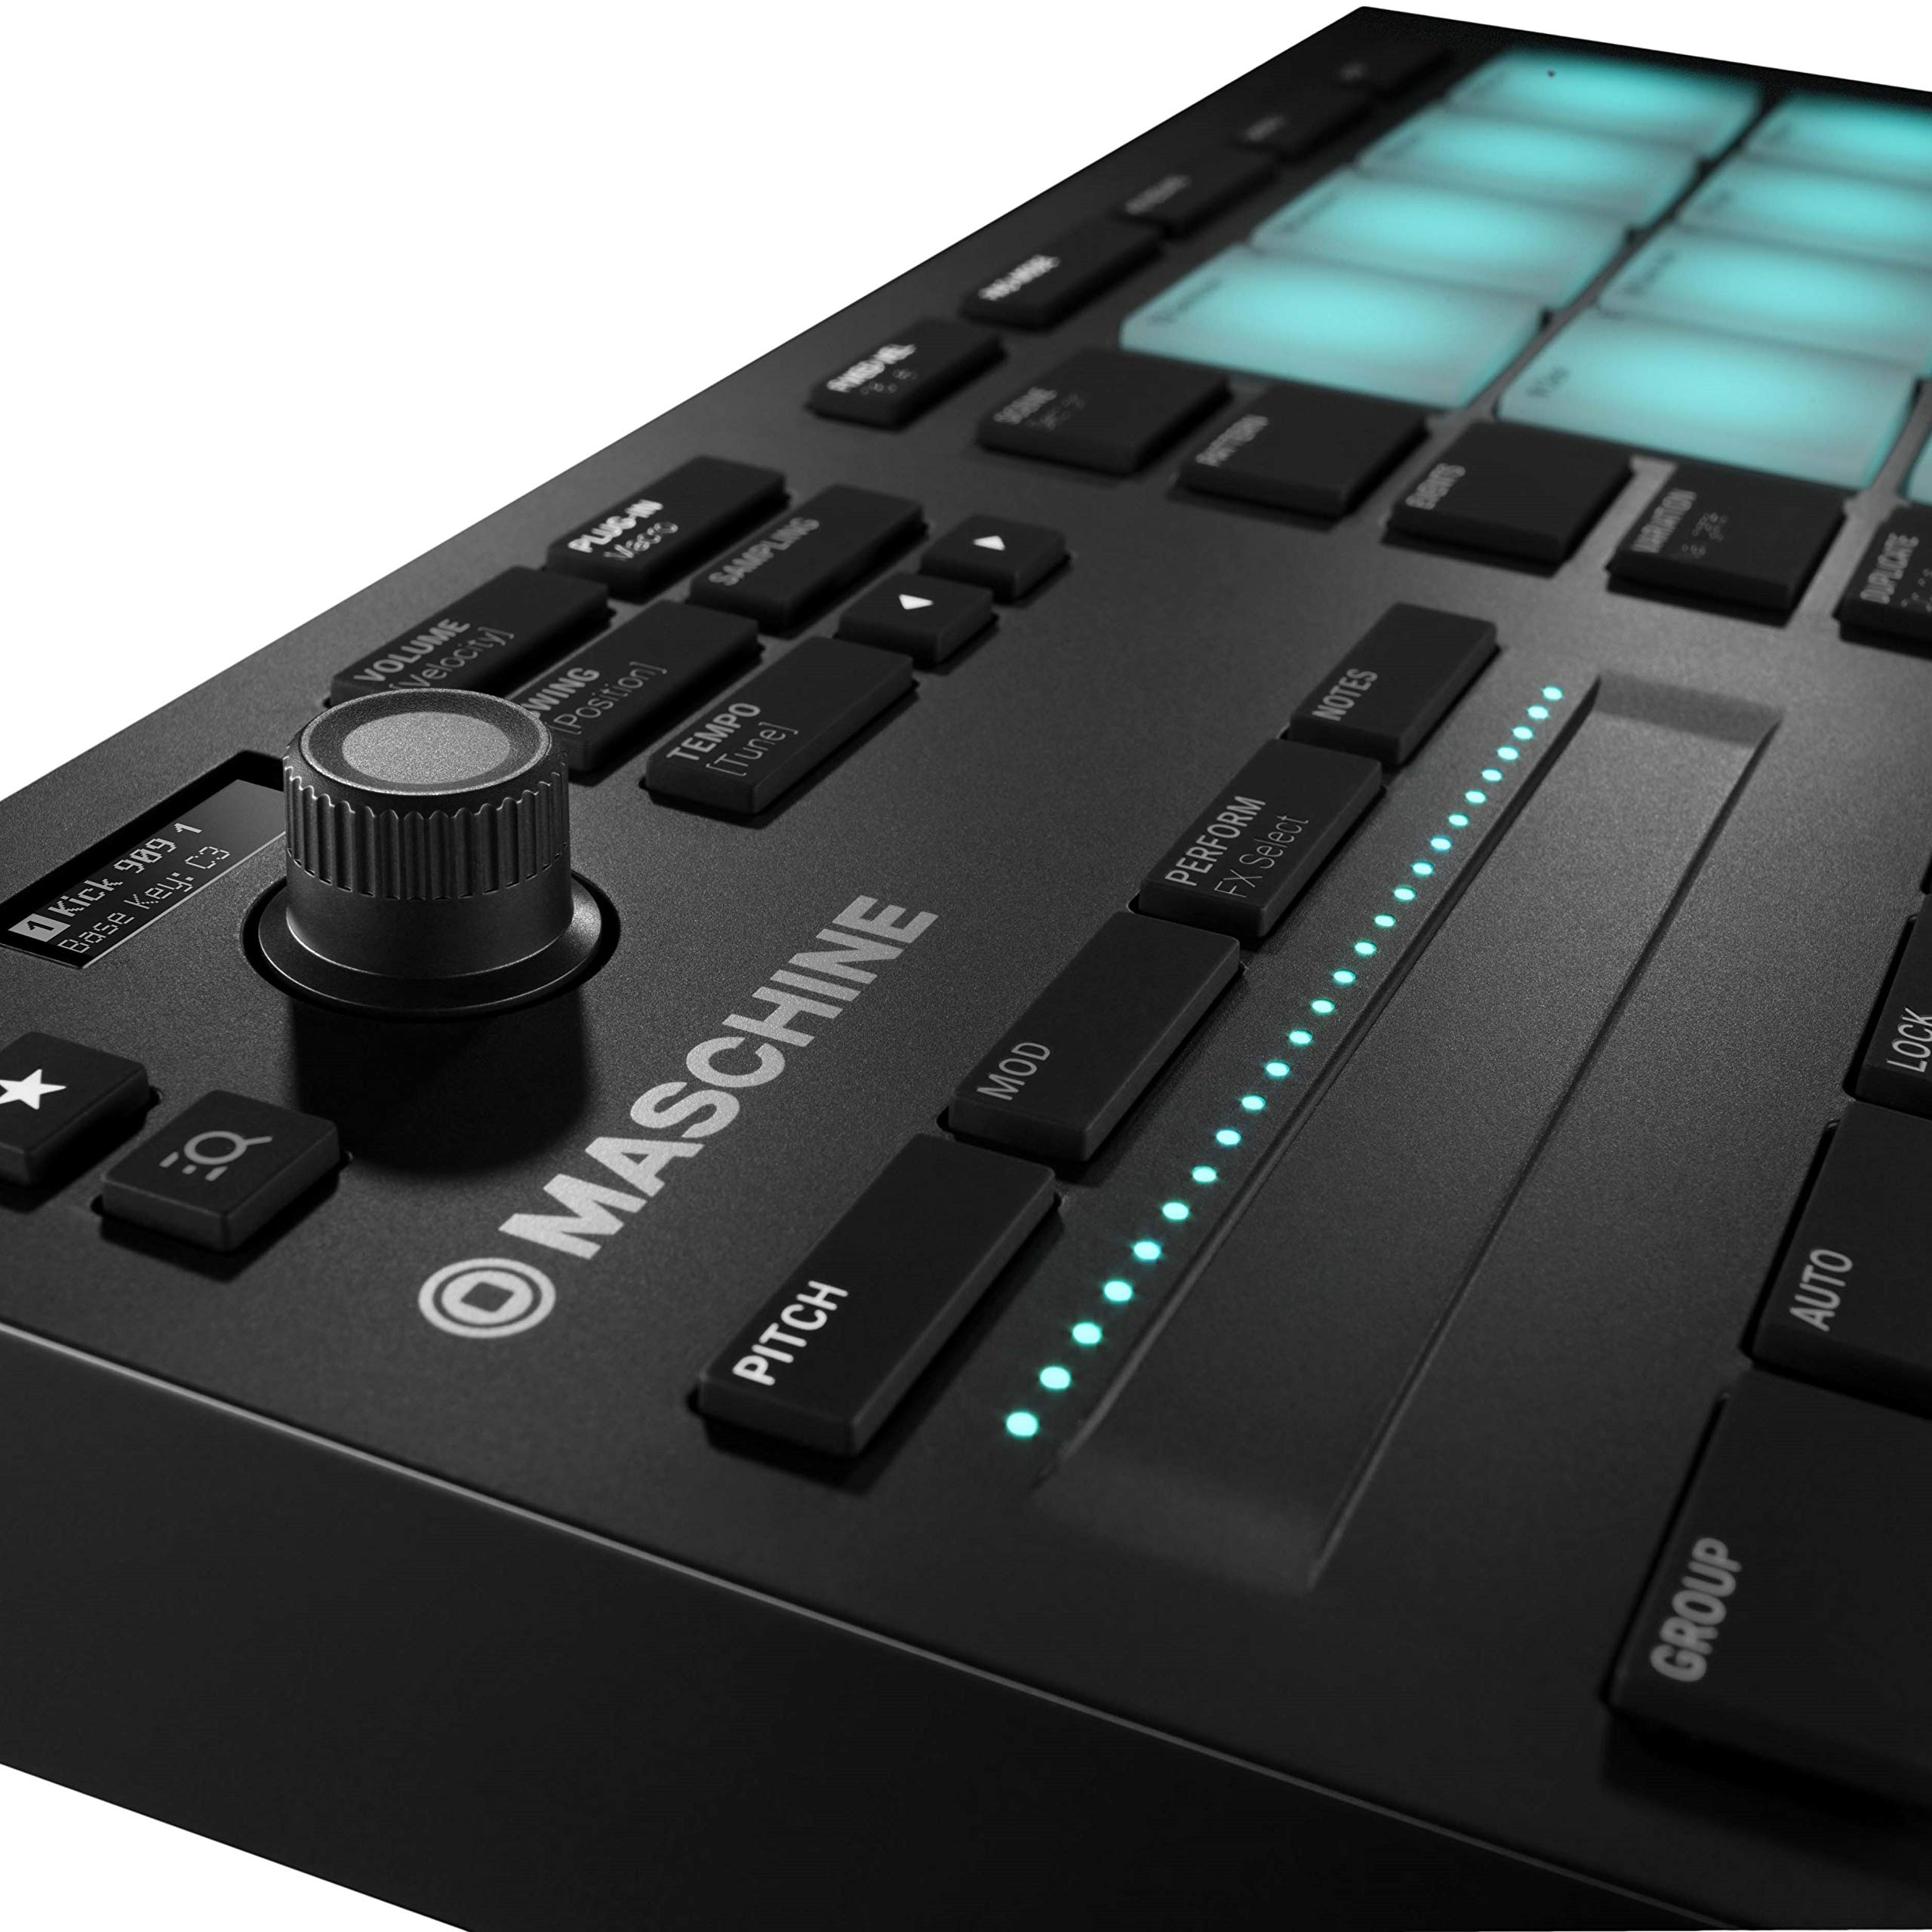 Native Instruments Maschine Mikro Mk3 Drum Controller by Native Instruments (Image #6)